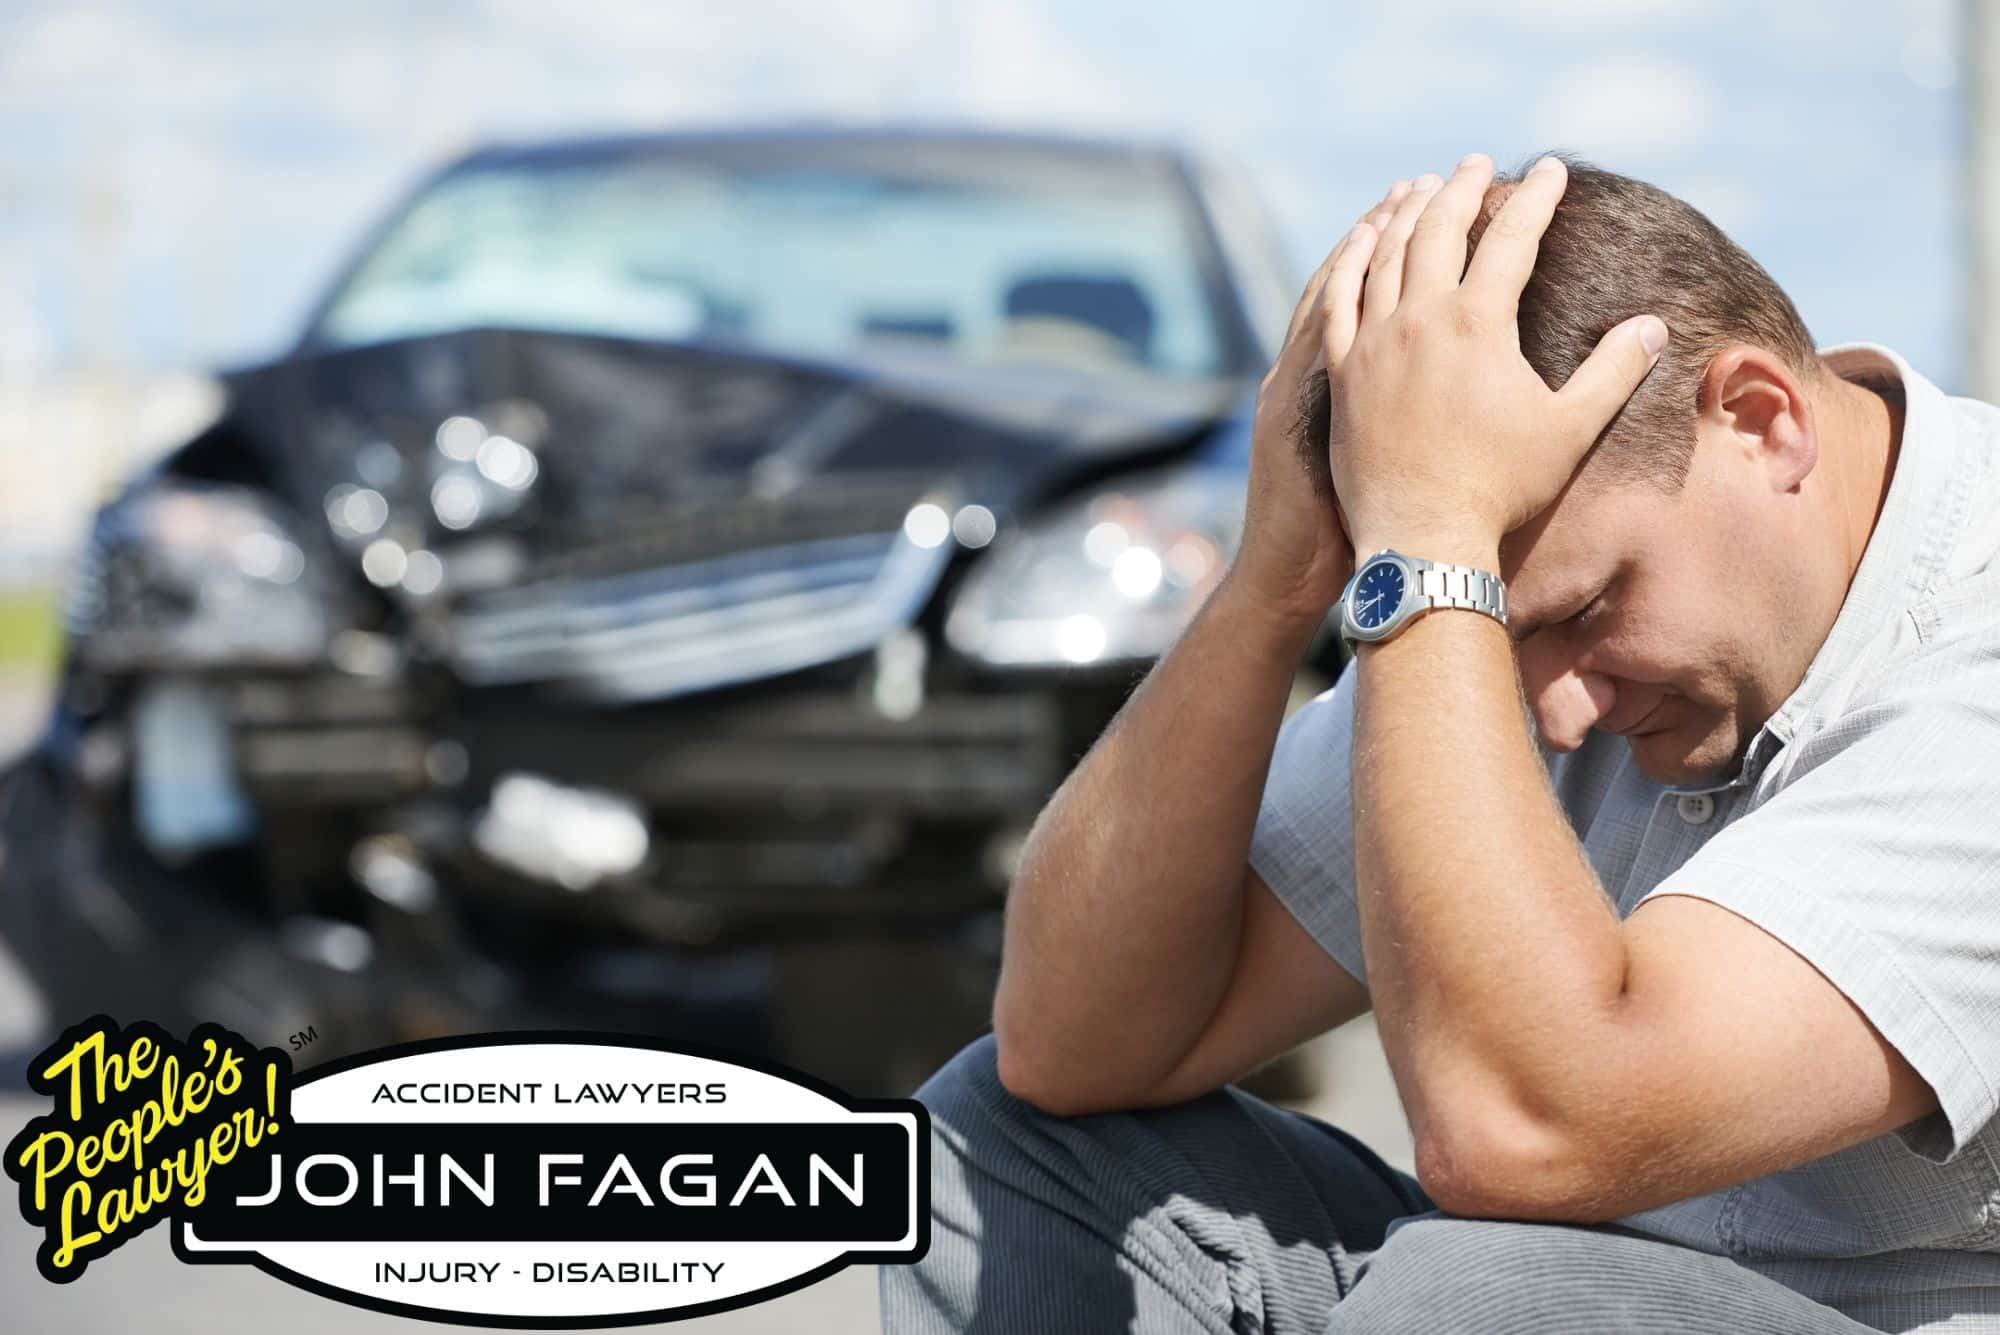 5 Things You Need to Know if You're Involved in an Auto Accident